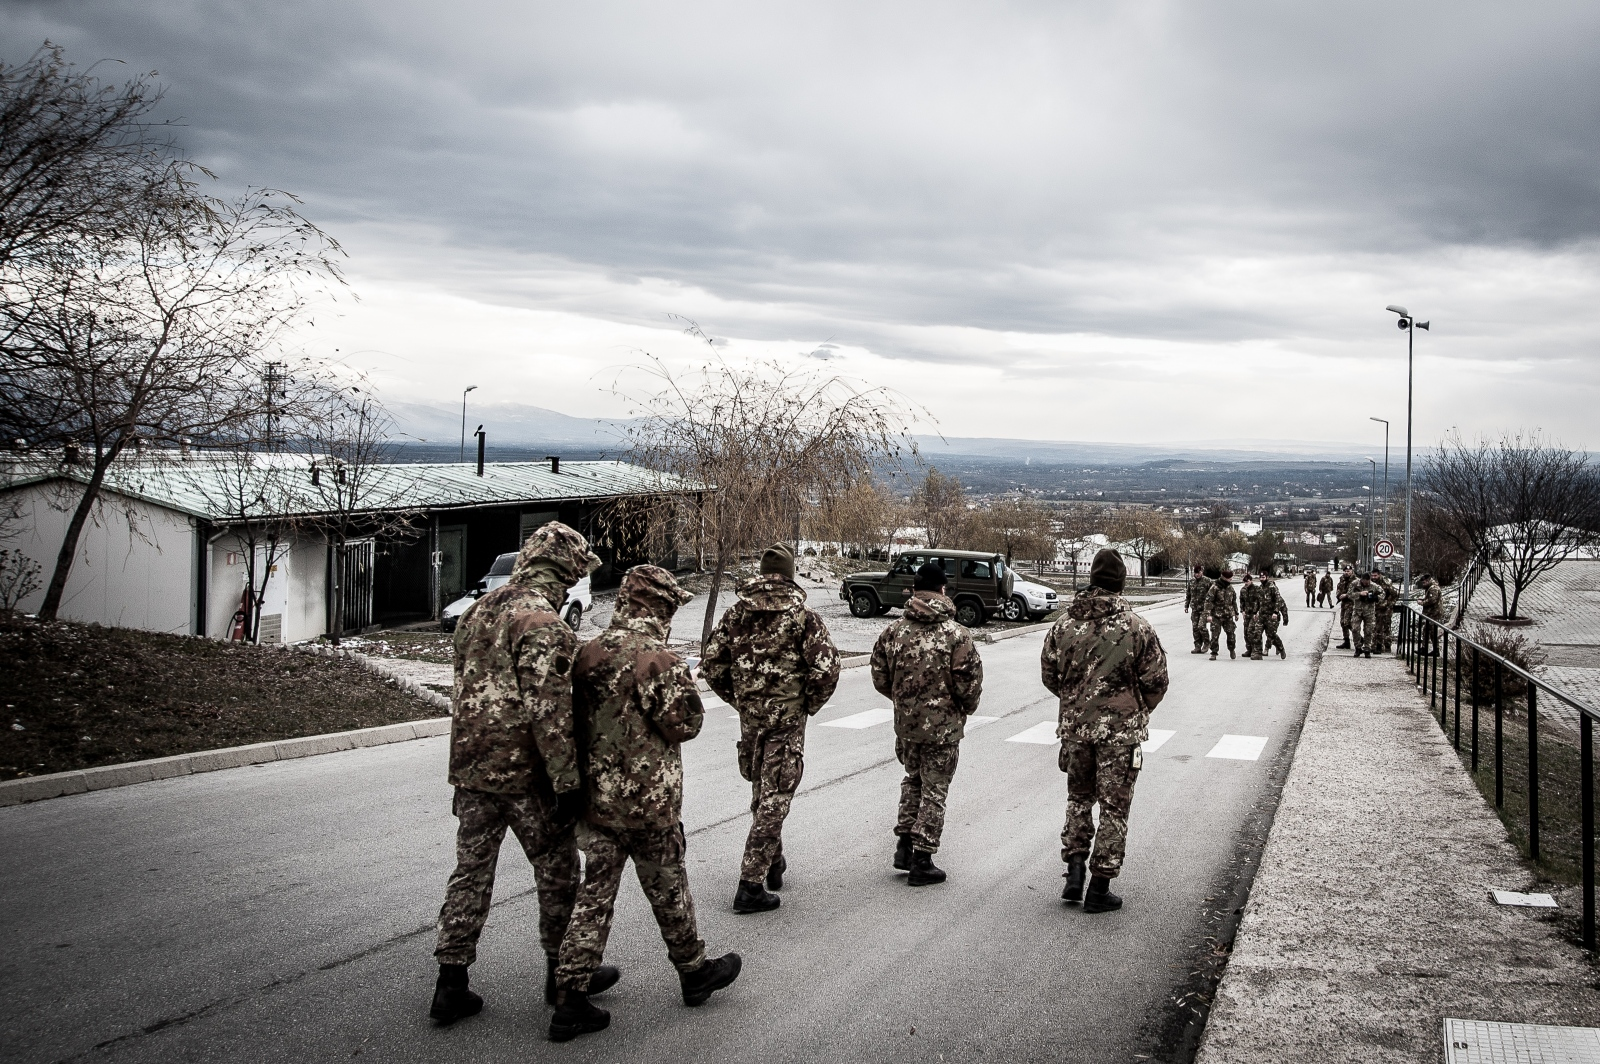 "KFOR soldiers walk in the streets of Camp ""Villaggio Italia"" during a break. The Multinational Battle Group West is made up of about 5,000 soldiers coming from Italy, Austria, Slovenia and Moldova. The surveillance of the monastery remained one of the main activities performed by the Multinational Battle Group West in Kosovo."